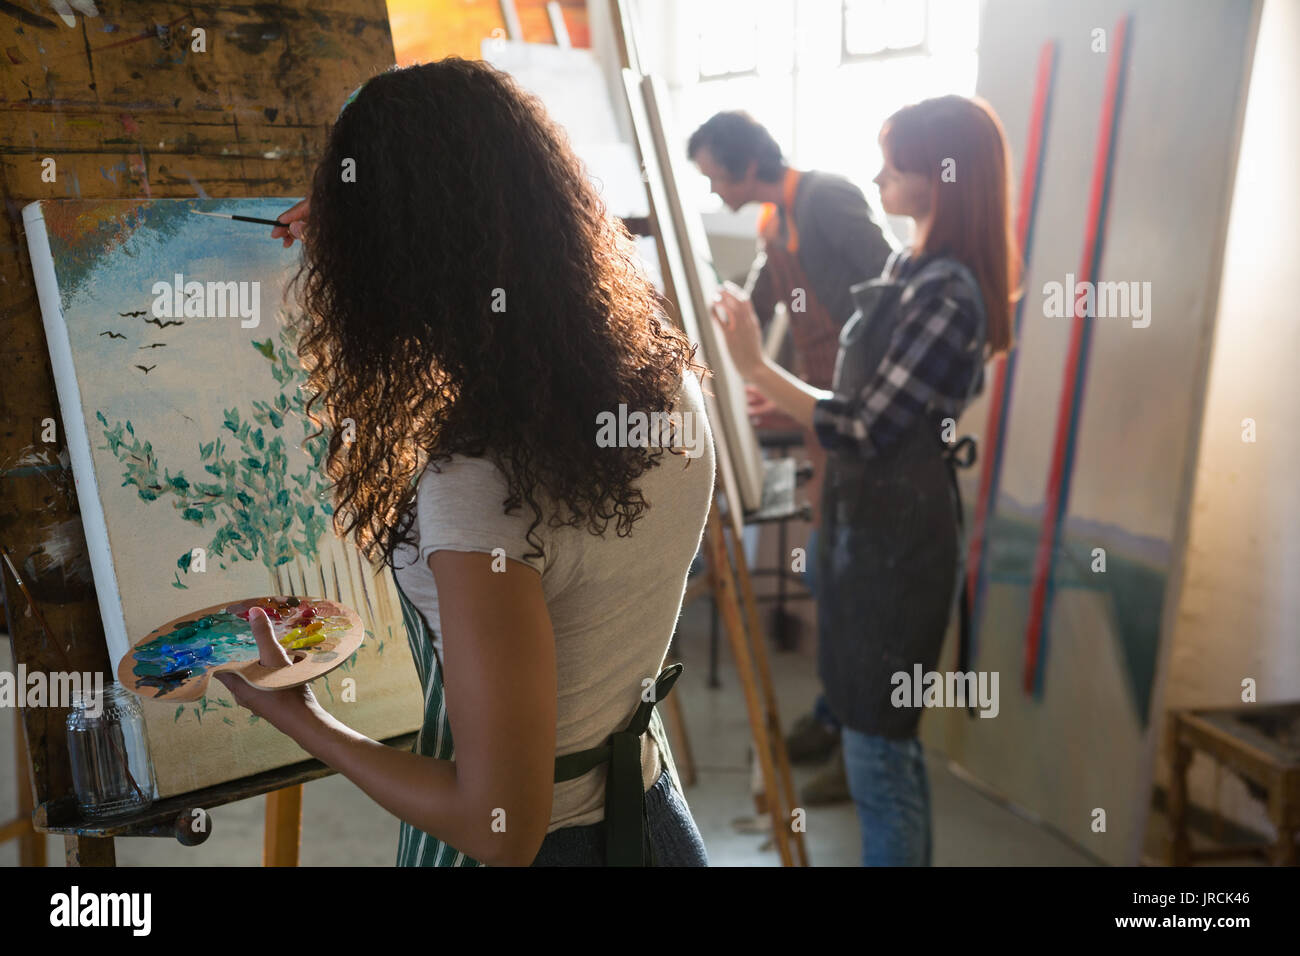 Adult friends painting on artists canvas in art class - Stock Image